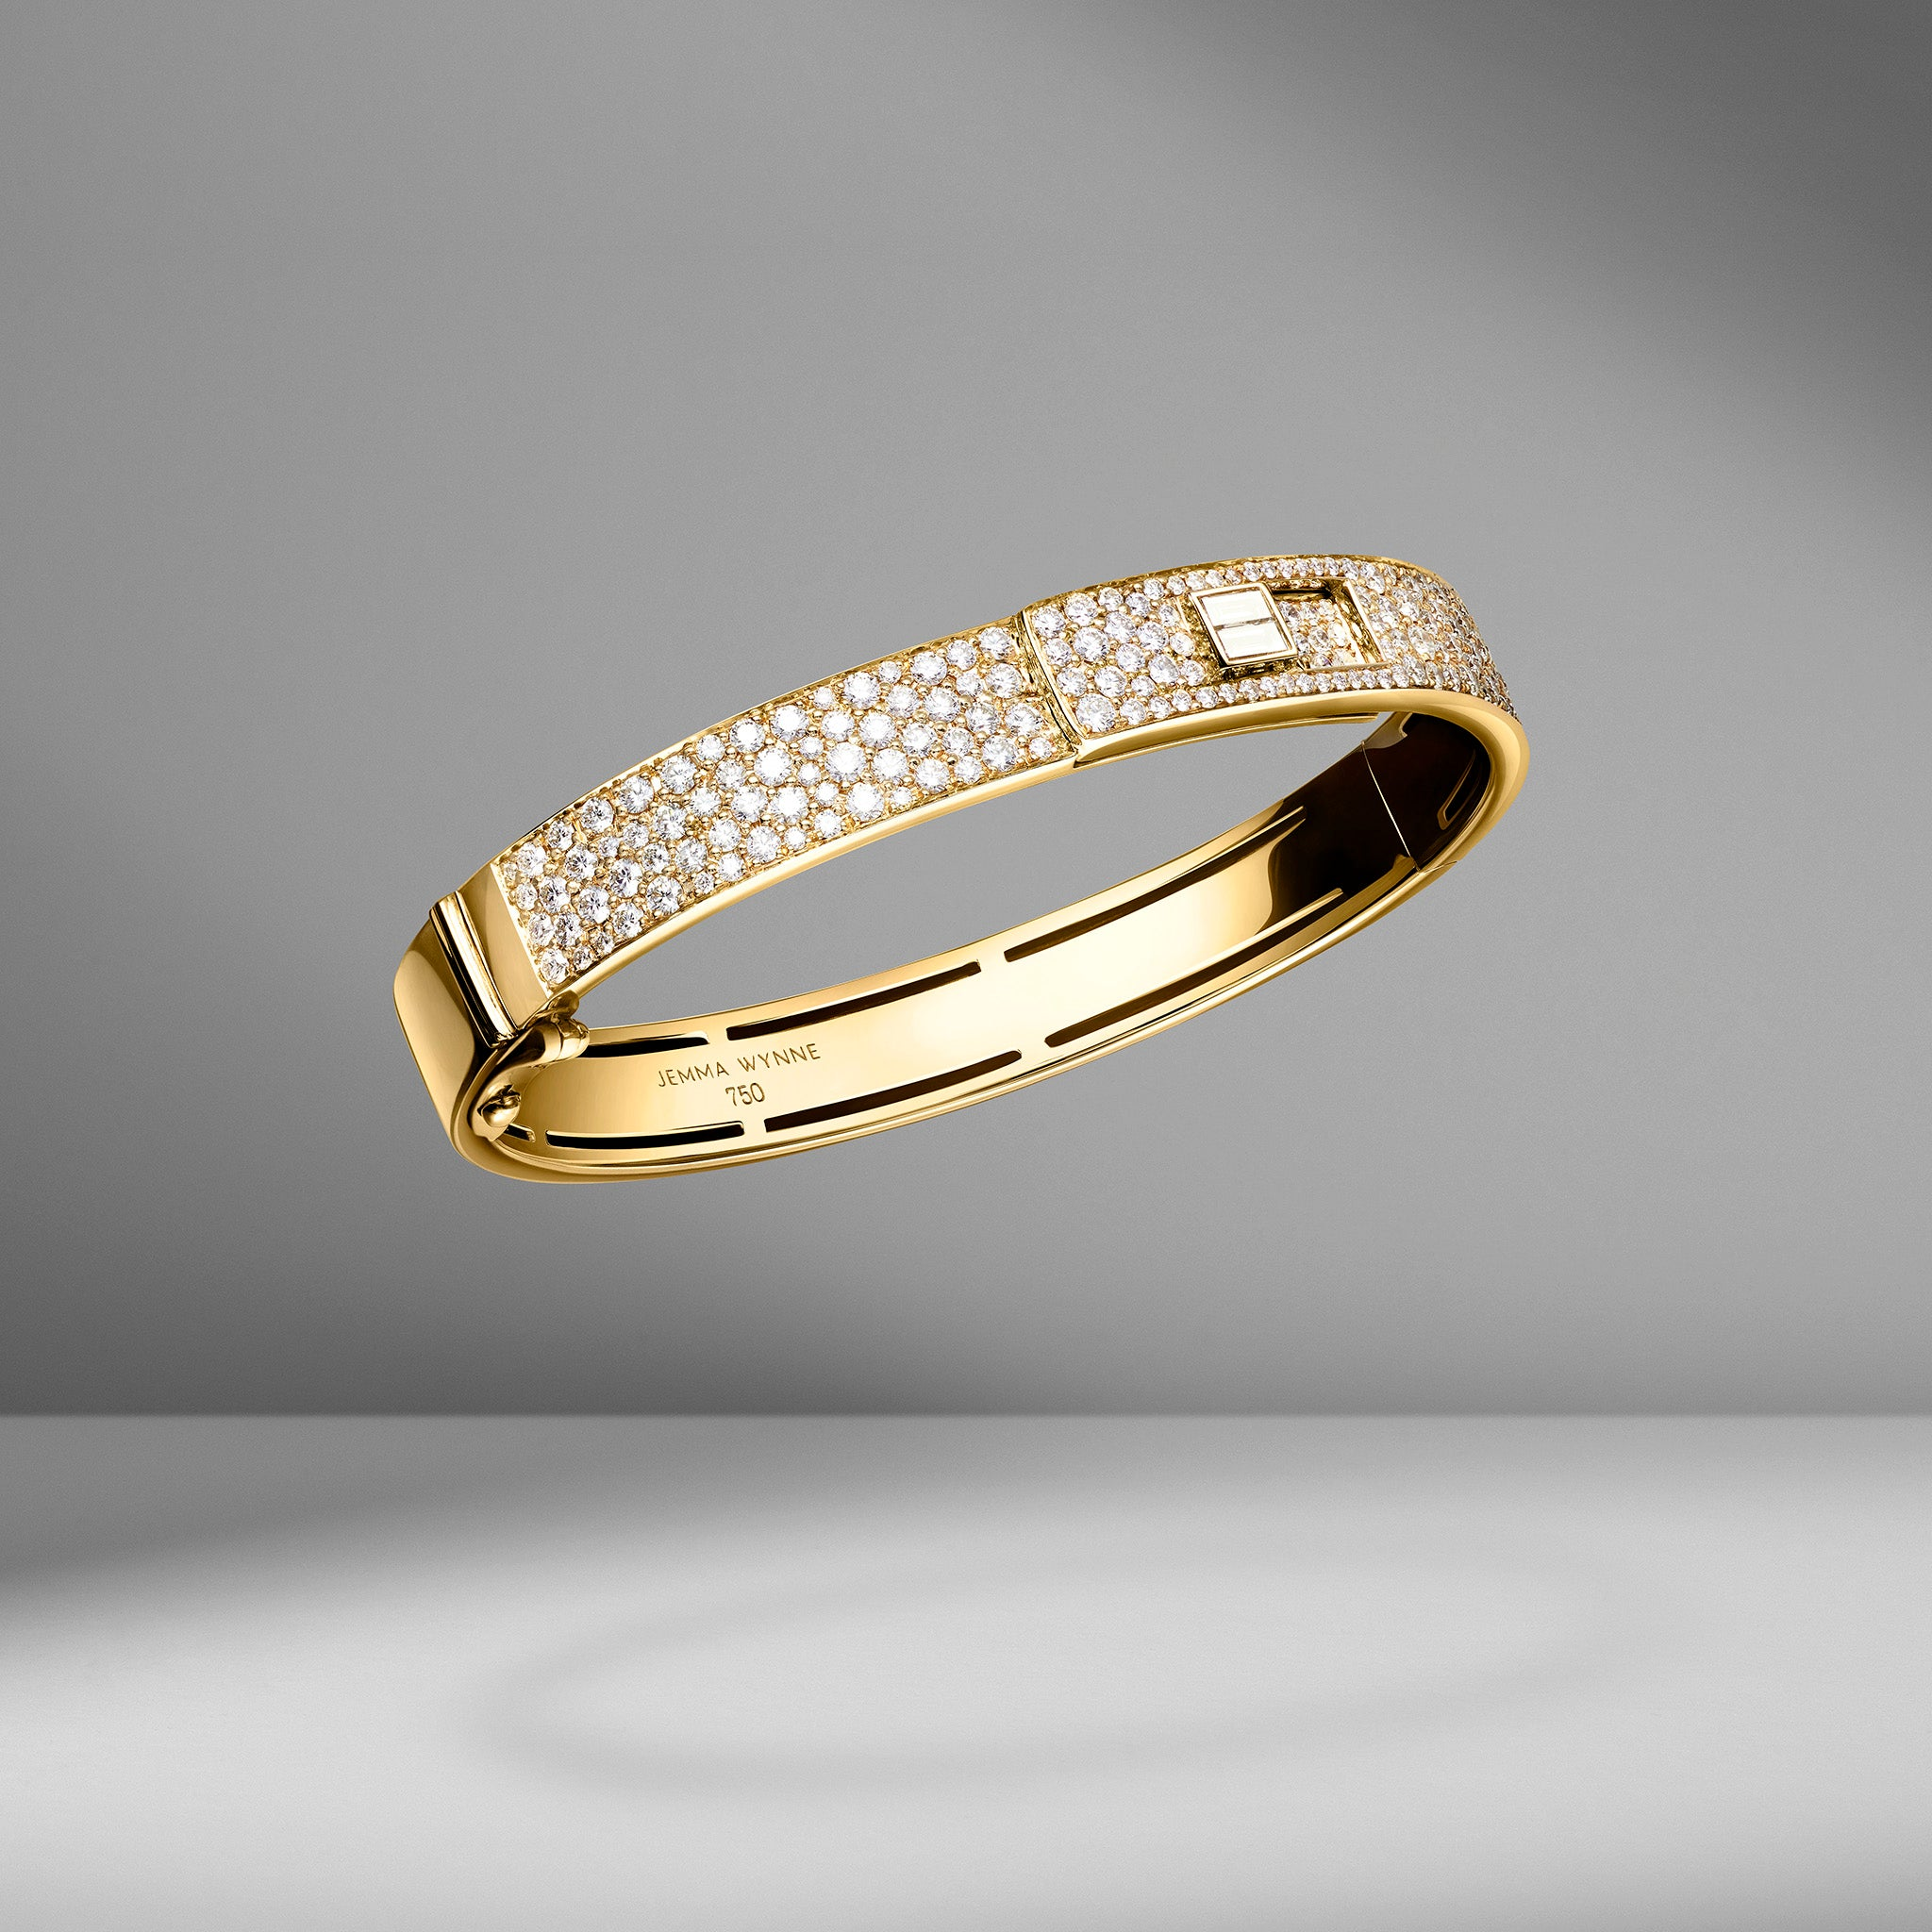 Prive Luxe Pavé Diamond Bangle